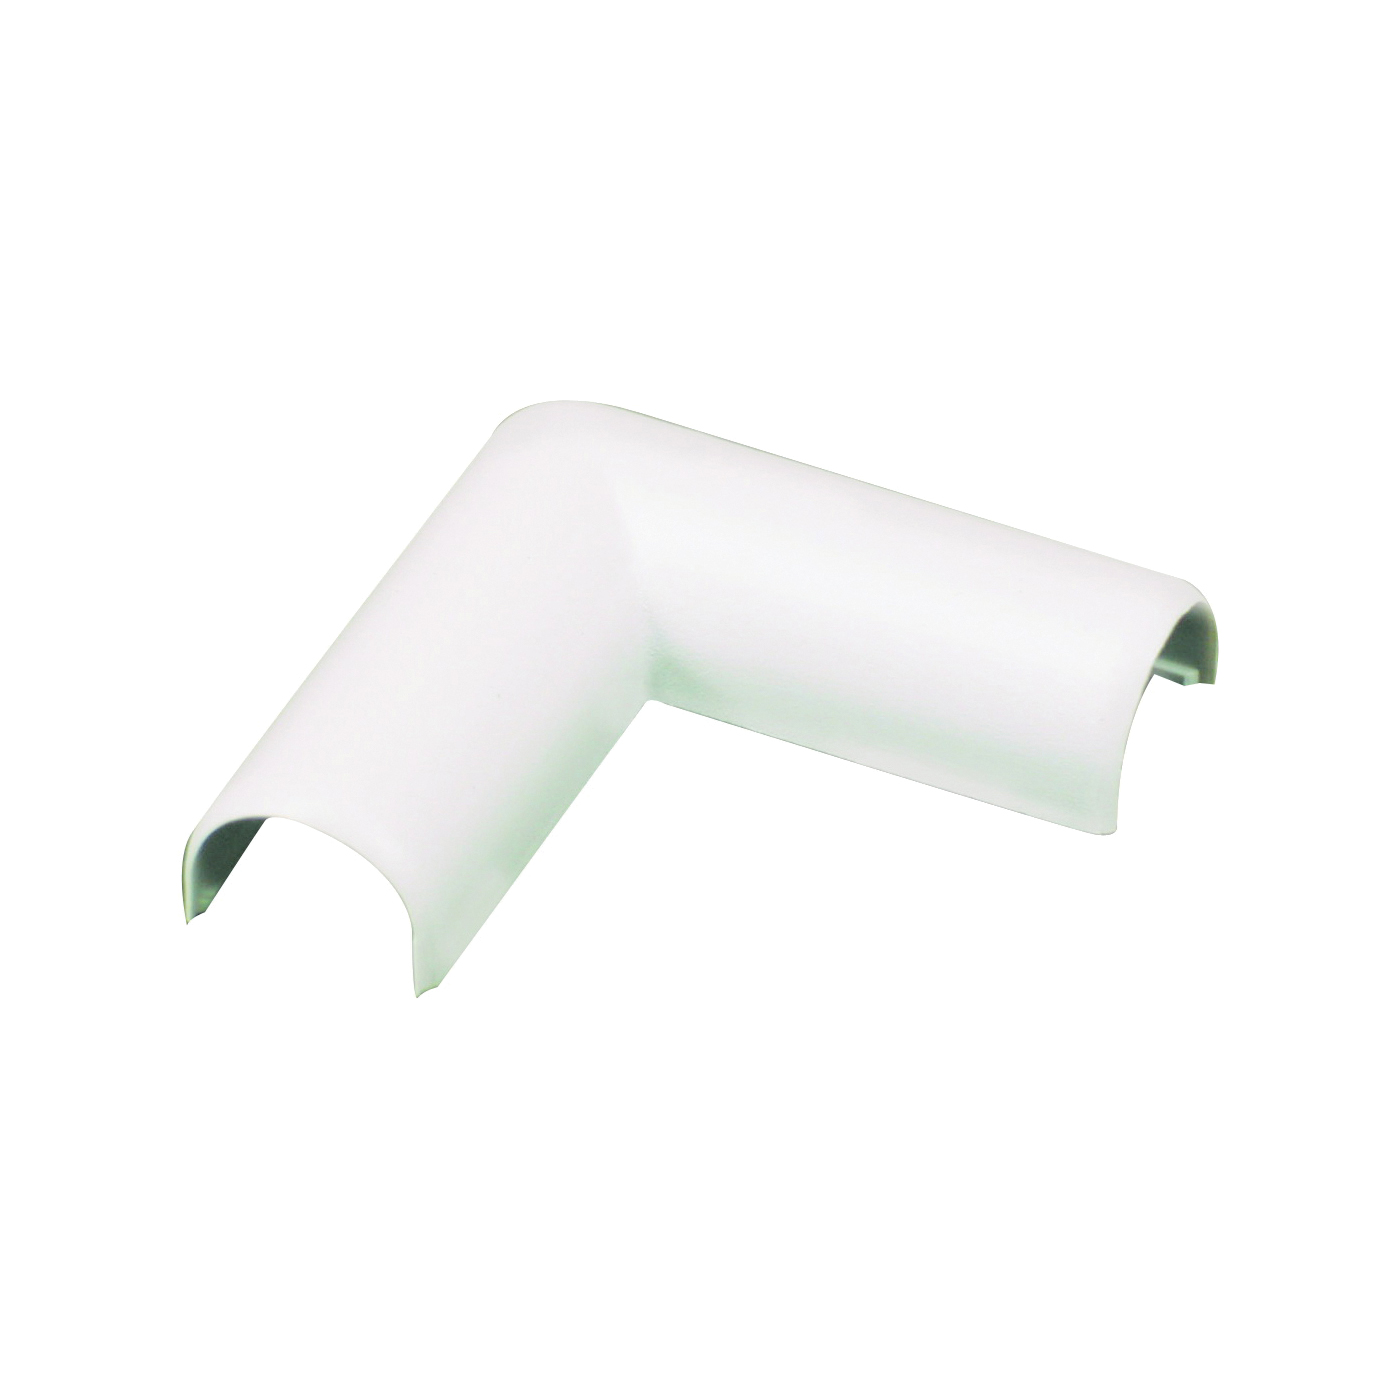 Picture of Legrand Wiremold C16 Wireway Elbow, Flat, PVC, White